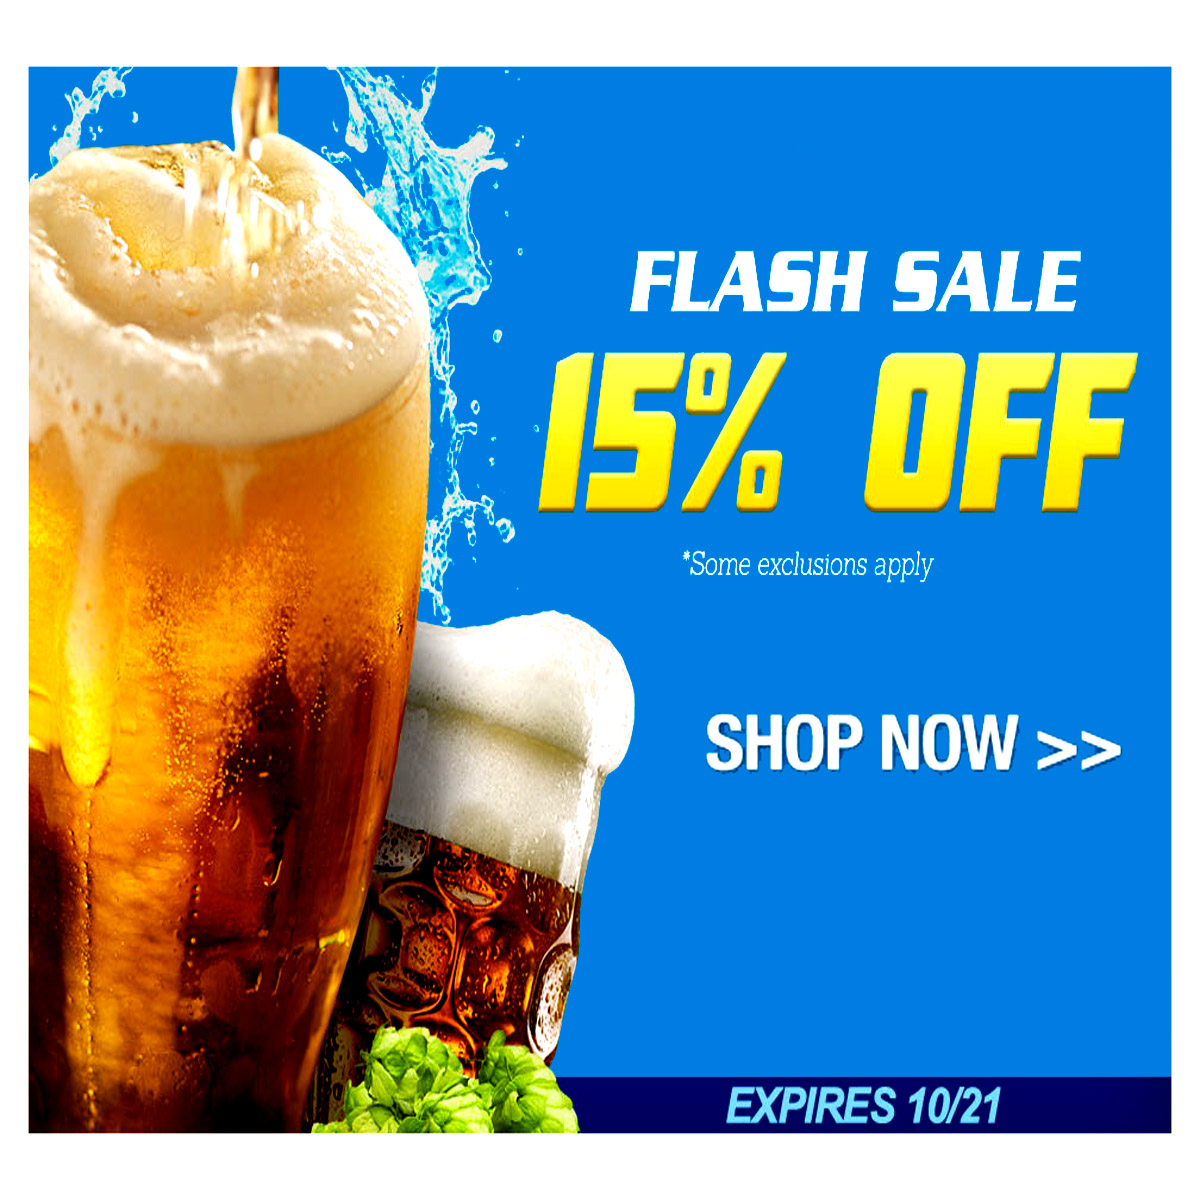 Coupon Code For Homebrew Flash Sale - Save 15% Coupon Code